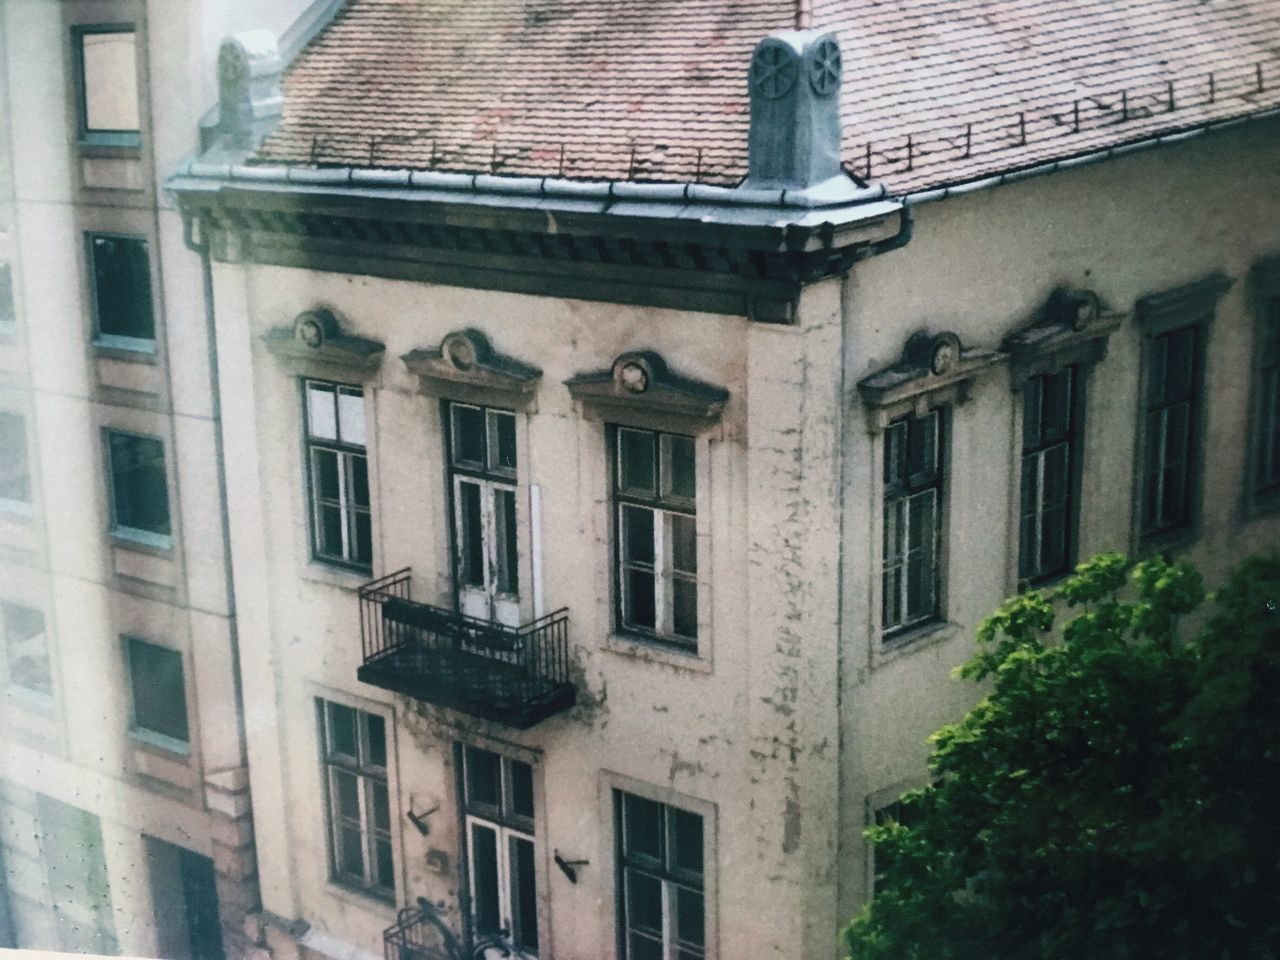 35mm // Old Town // Canon T70 // Building Exterior Architecture Window Built Structure House Outdoors Residential Building Roof Canon T70 This Week On Eyeem 35mm Film Vintage Lifestyles Street Streetphotography Budapest Budapest, Hungary Architecture City The Photojournalist - 2017 EyeEm Awards